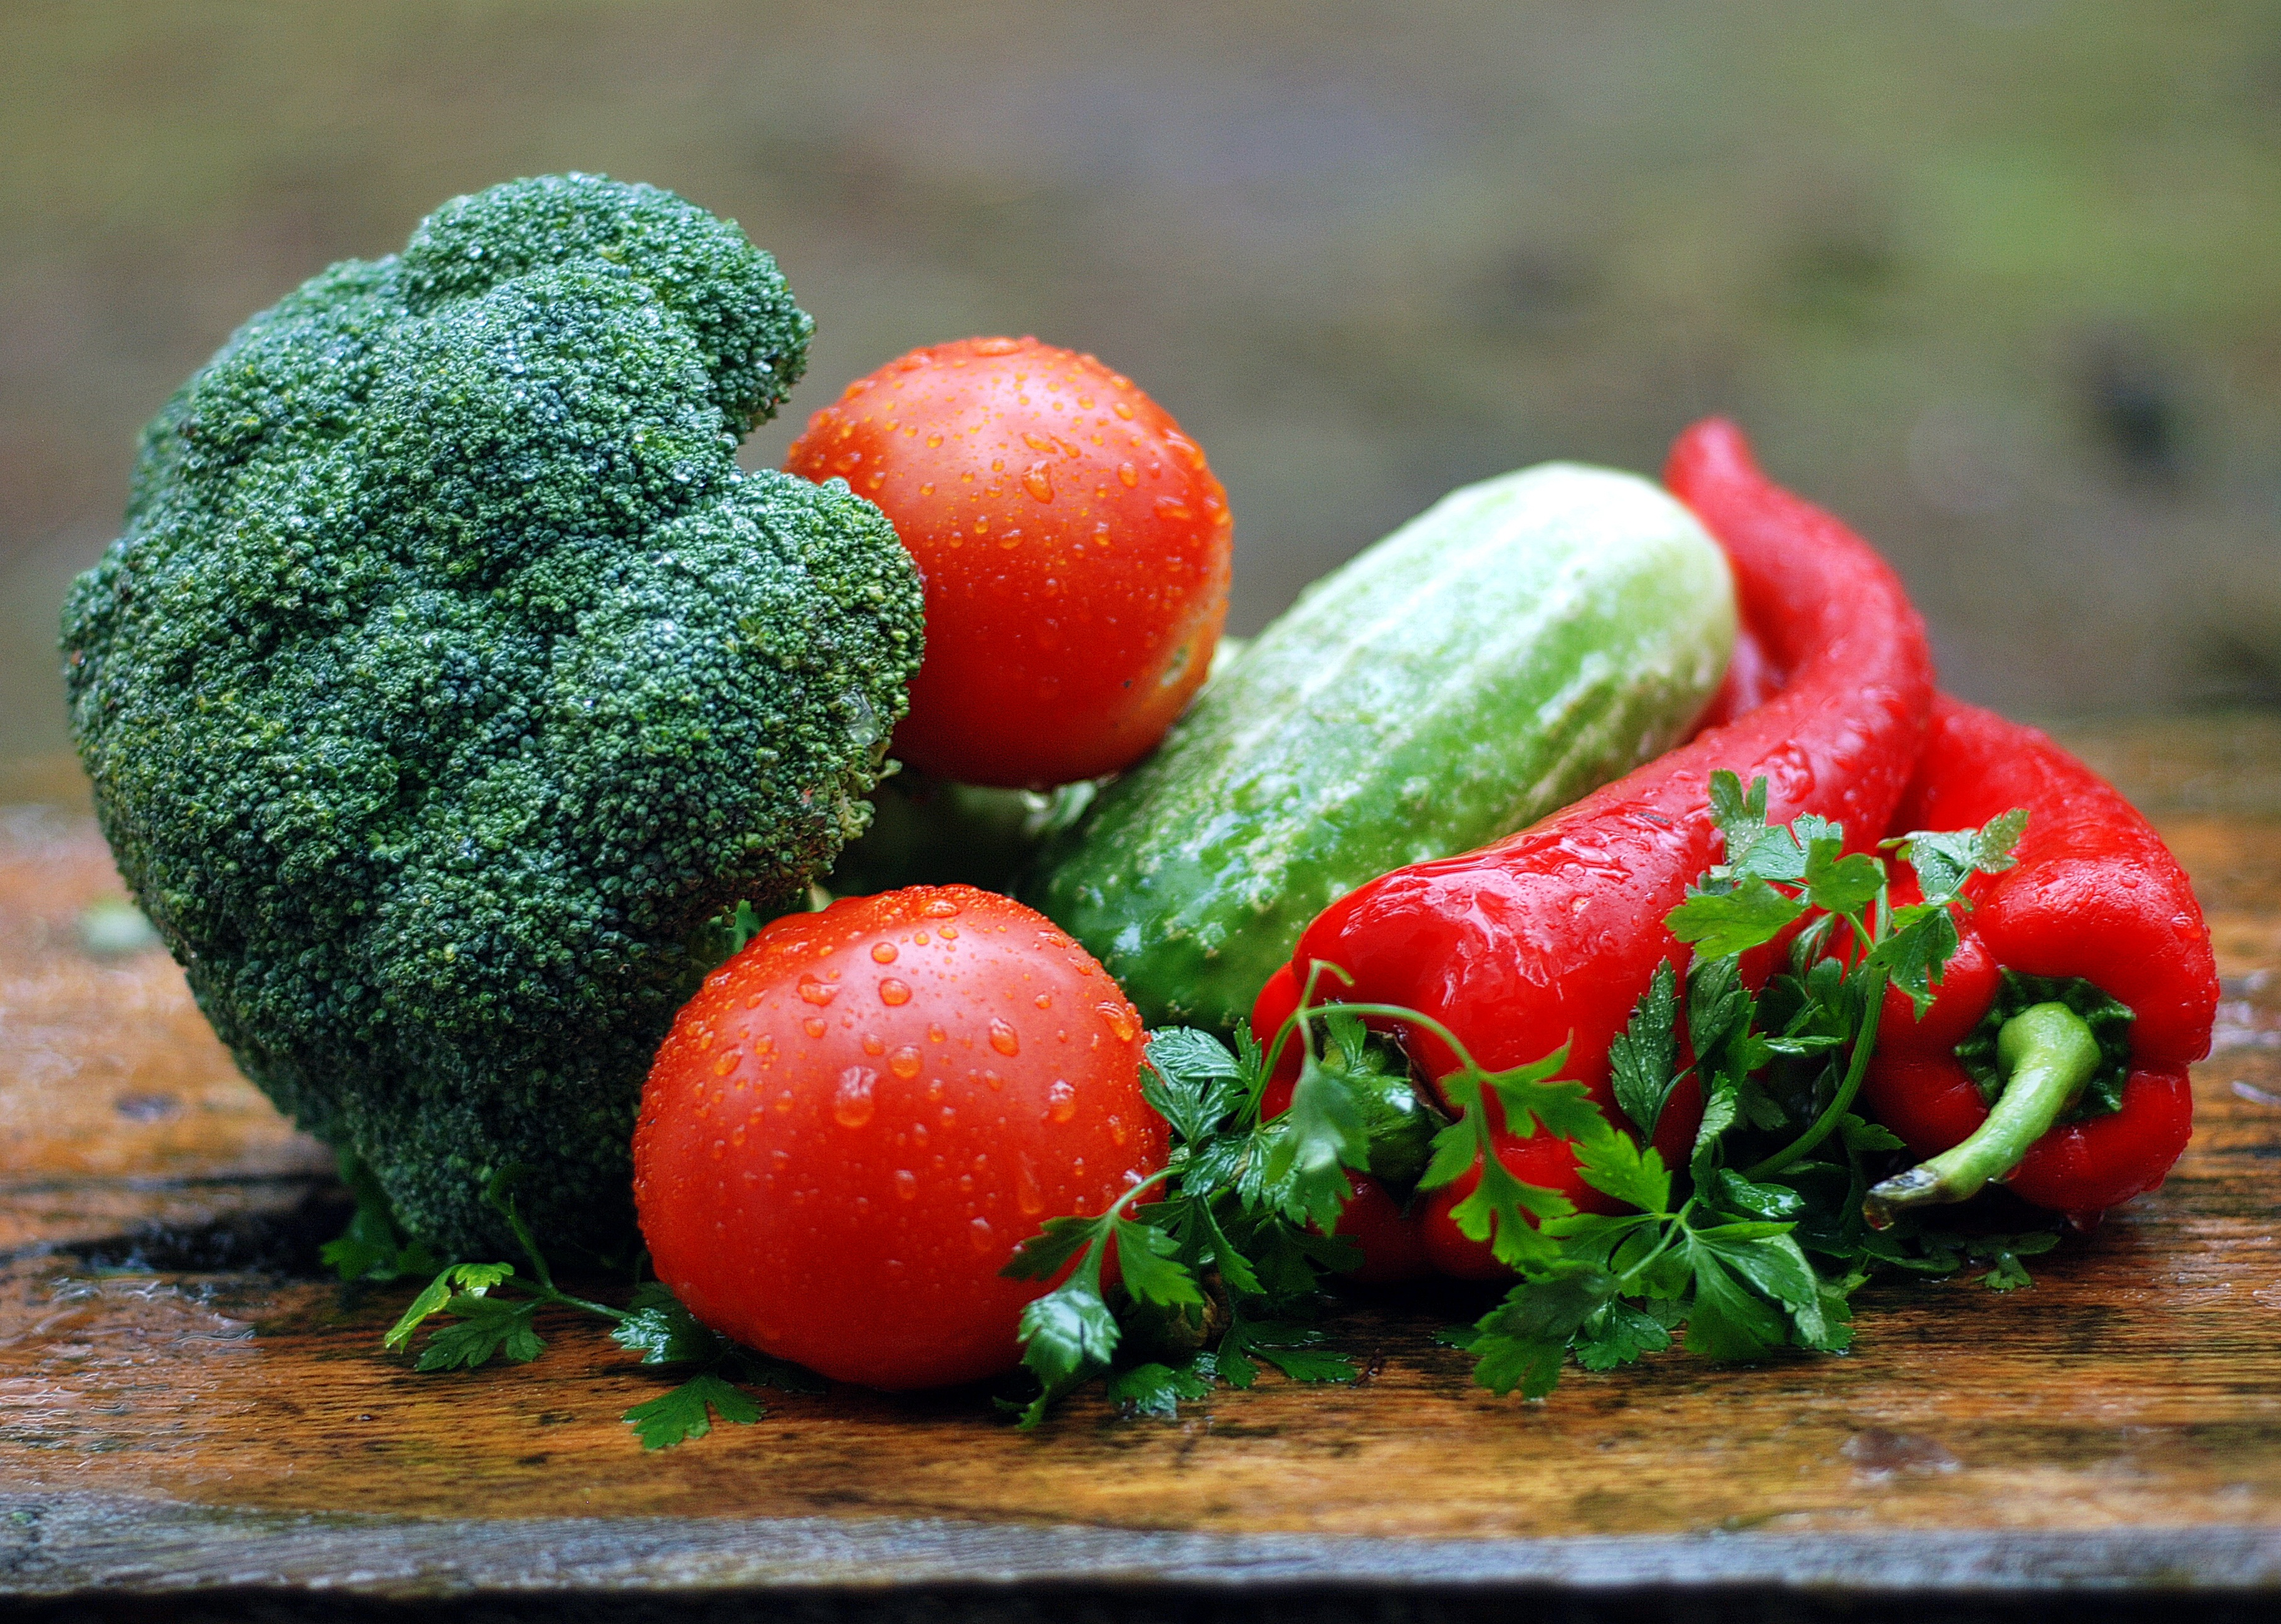 Various Vegetable on a table